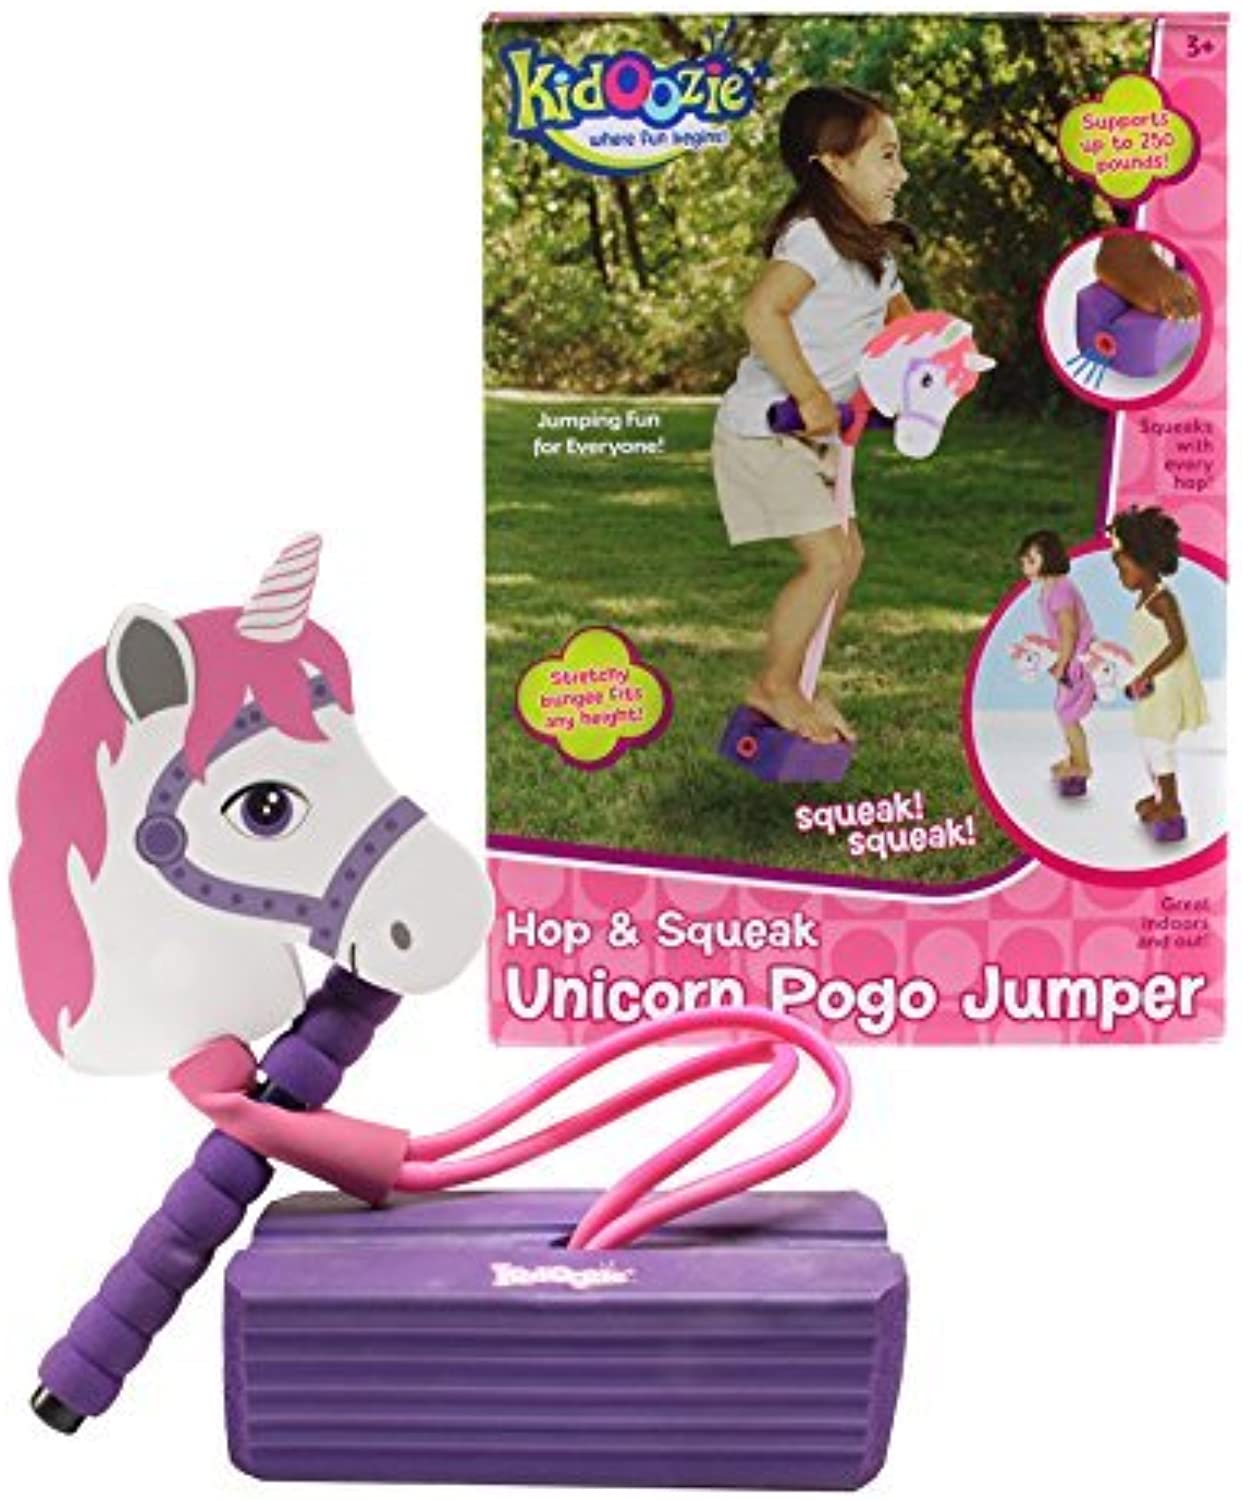 Kidoozie Foam Unicorn Pogo Jumper  Fun and Safe Play  Encourages an Active Lifestyle  Makes Squeaky Sounds  For All Sizes, 250 Pound Capacity by Kidoozie